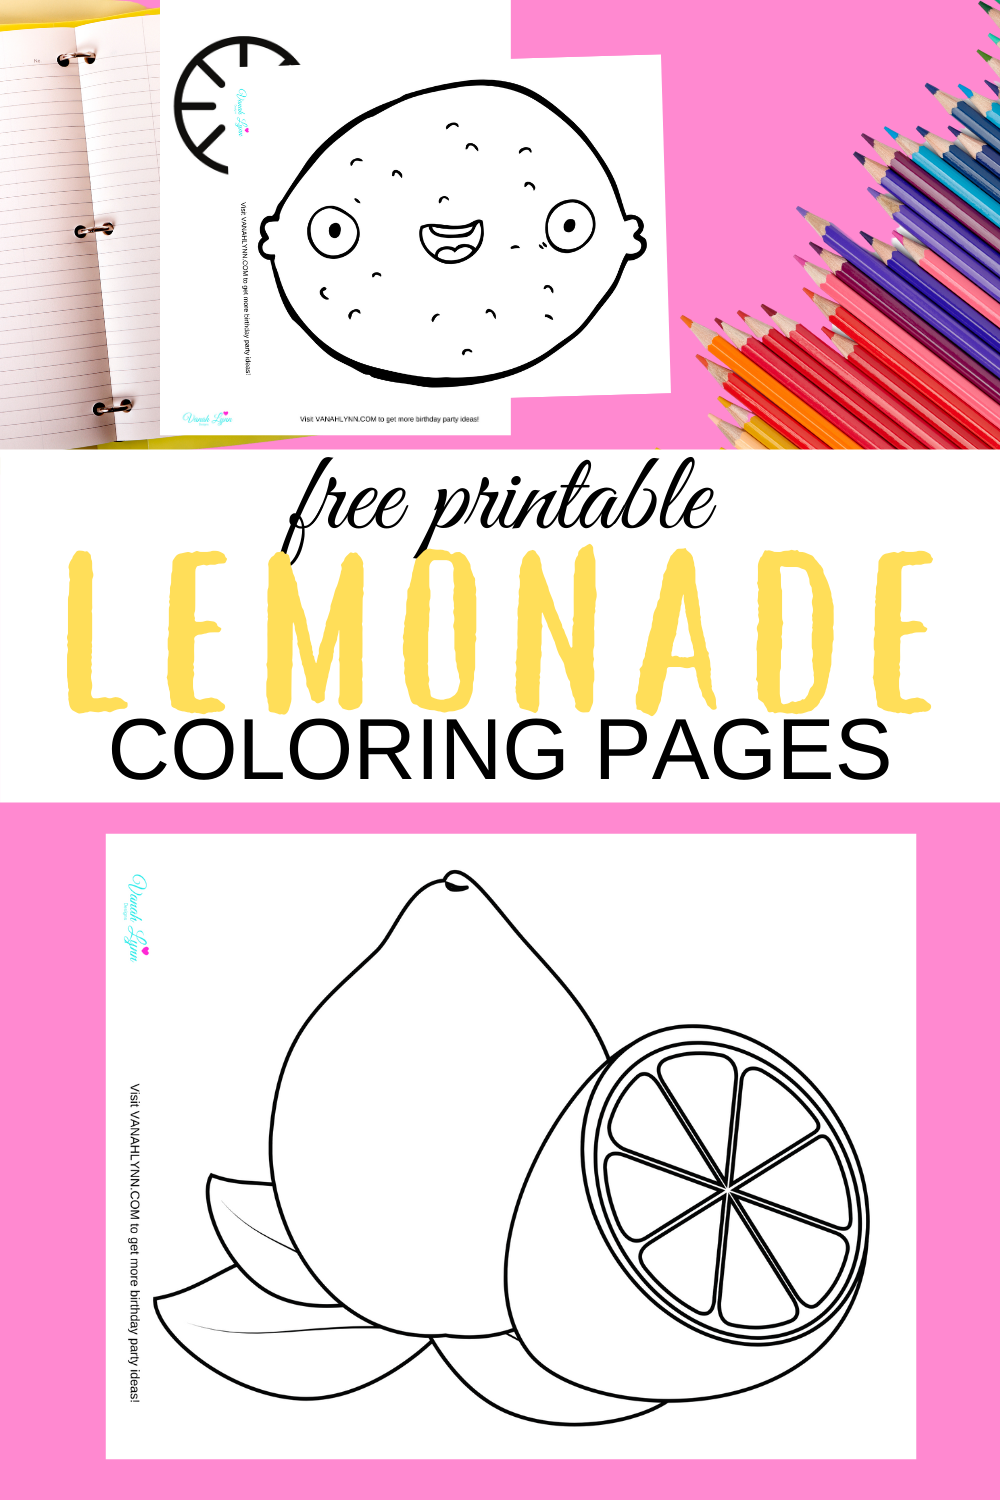 lemon coloring sheets for a summer rainy day activity